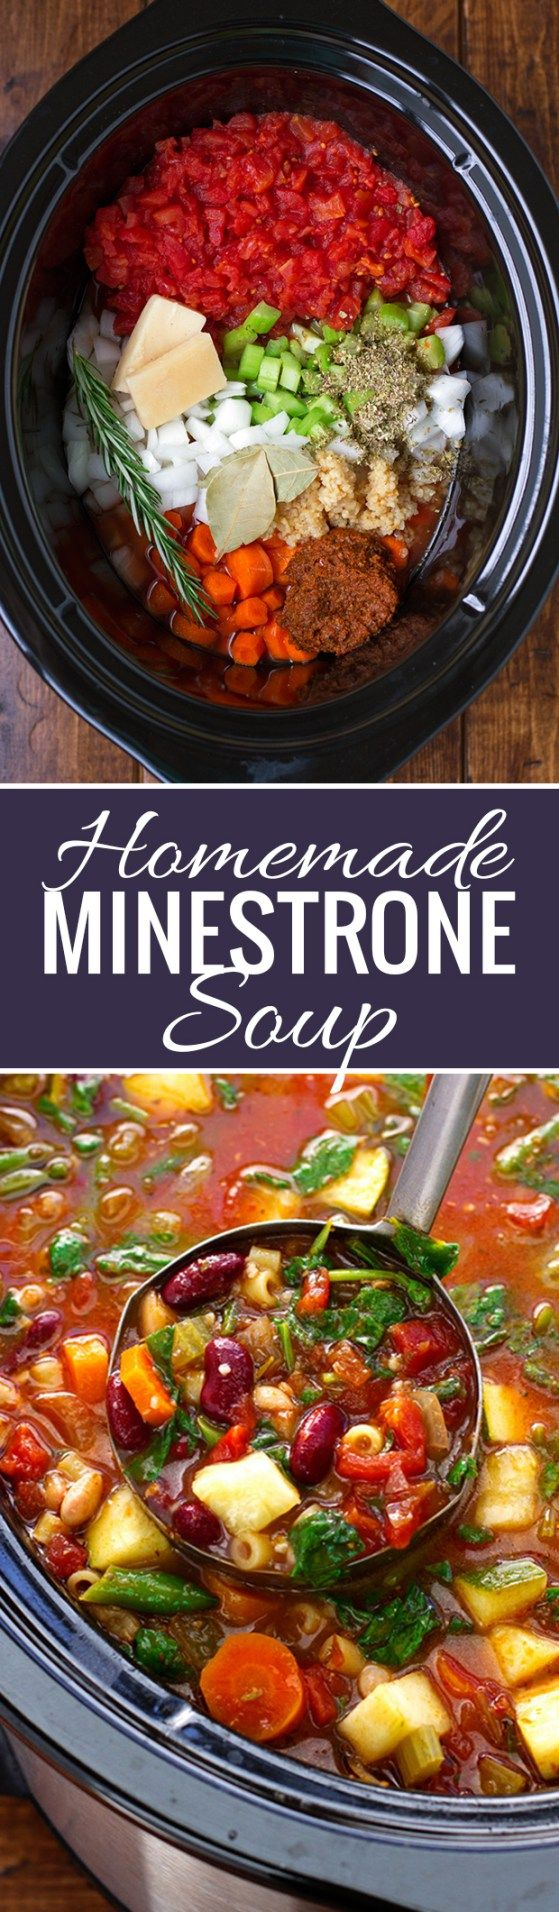 Homemade Minestrone Soup {Slow Cooker} made with a secret ingredient, this soup is perfect for chilly evenings! #minestronesoup #crockpot #slowcooker #minestrone   LIttlespicejar.com